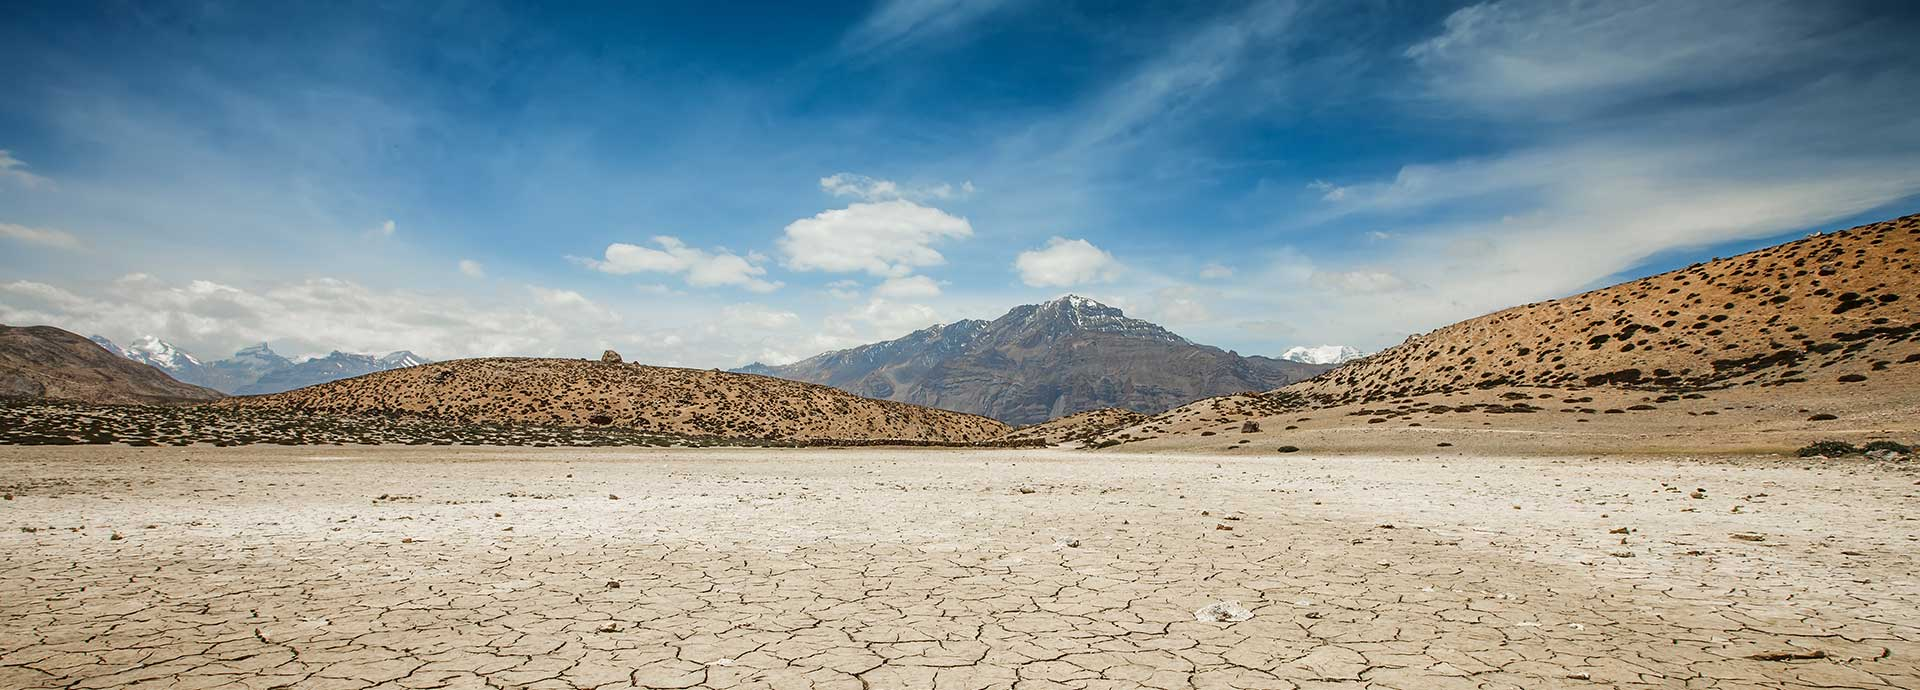 Saving water in the age of drought